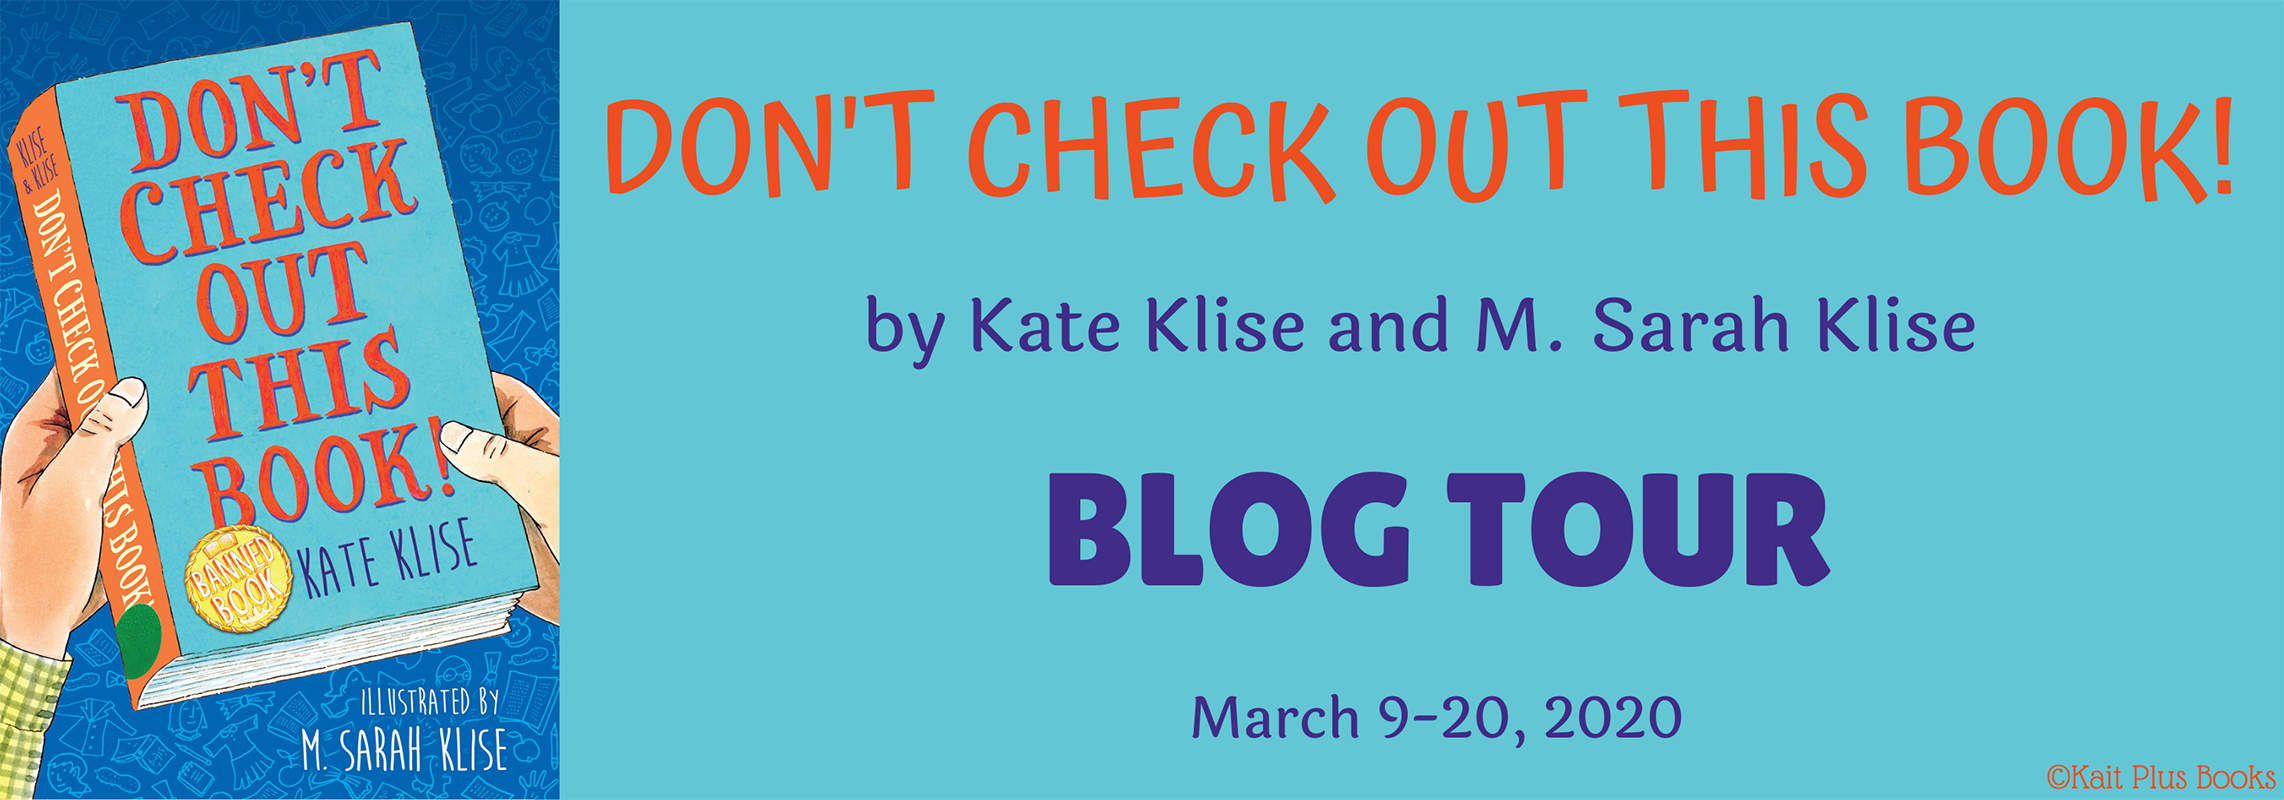 Blog Tour: Don't Check Out This Book! by Kate Klise and M. Sarah Klise (Spotlight+ Bookstagram!)